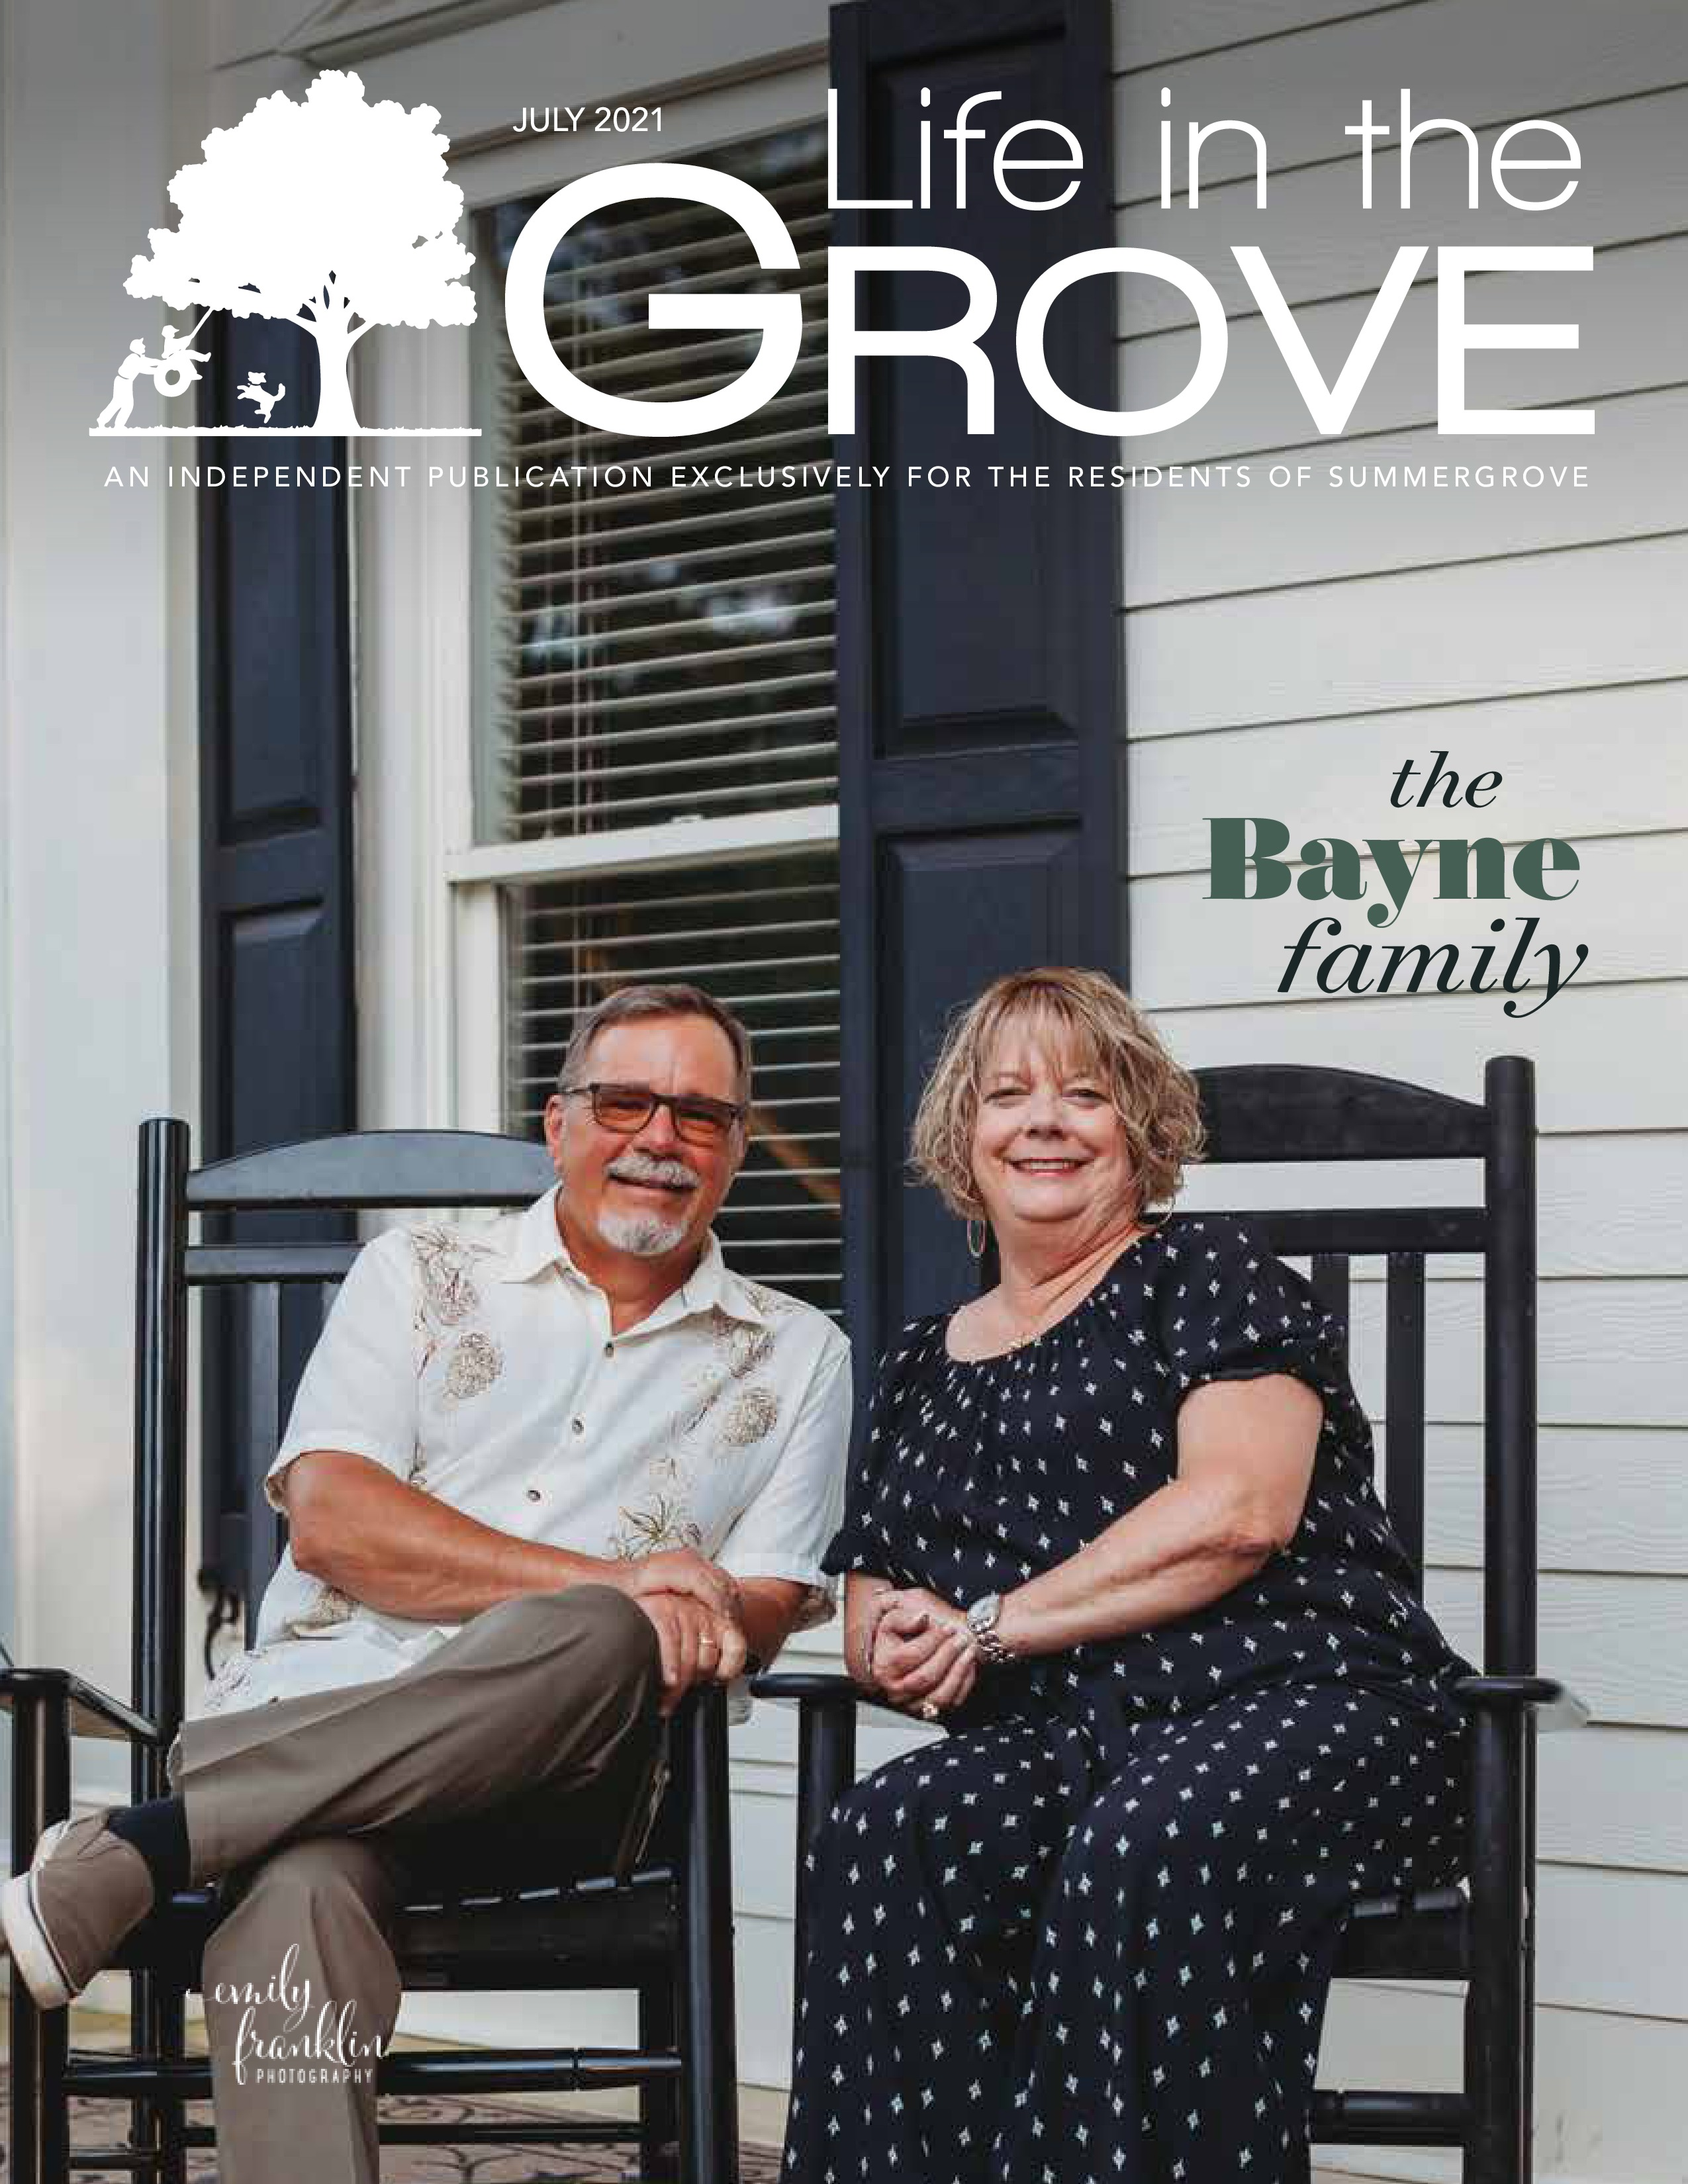 Life in the Grove 2021-07-01